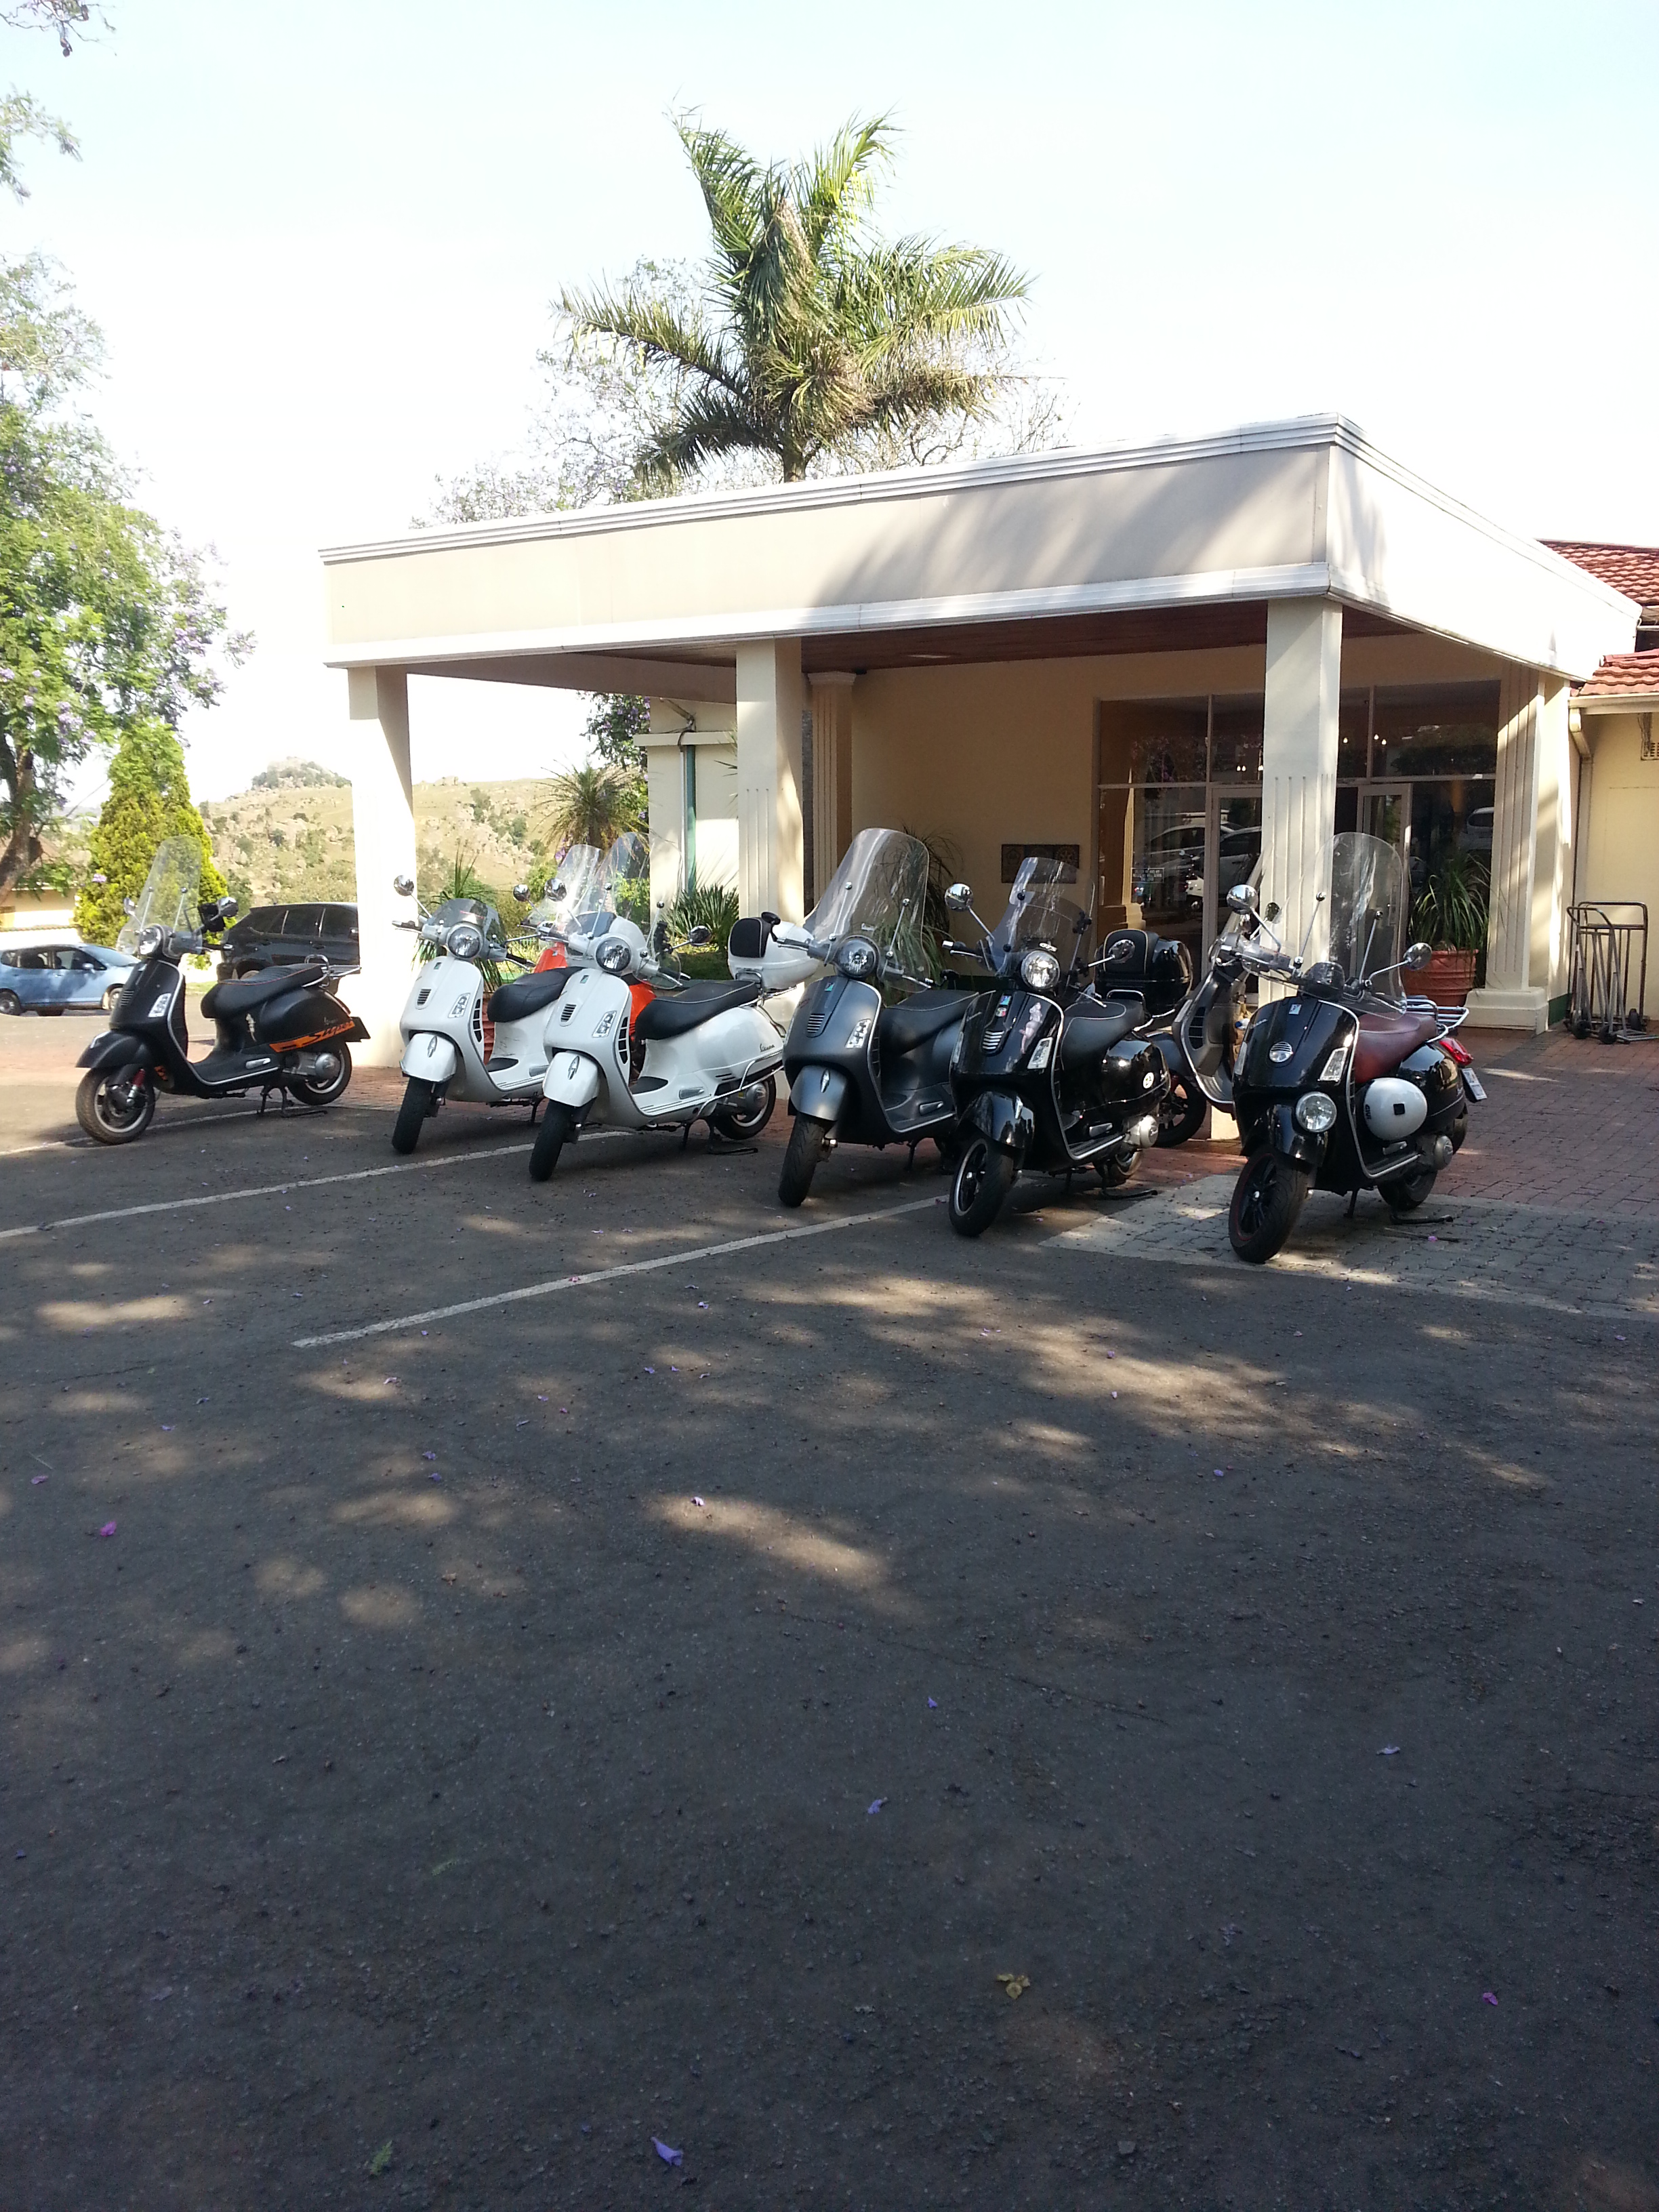 Vespas Mountain Inn Nov 2015.jpg